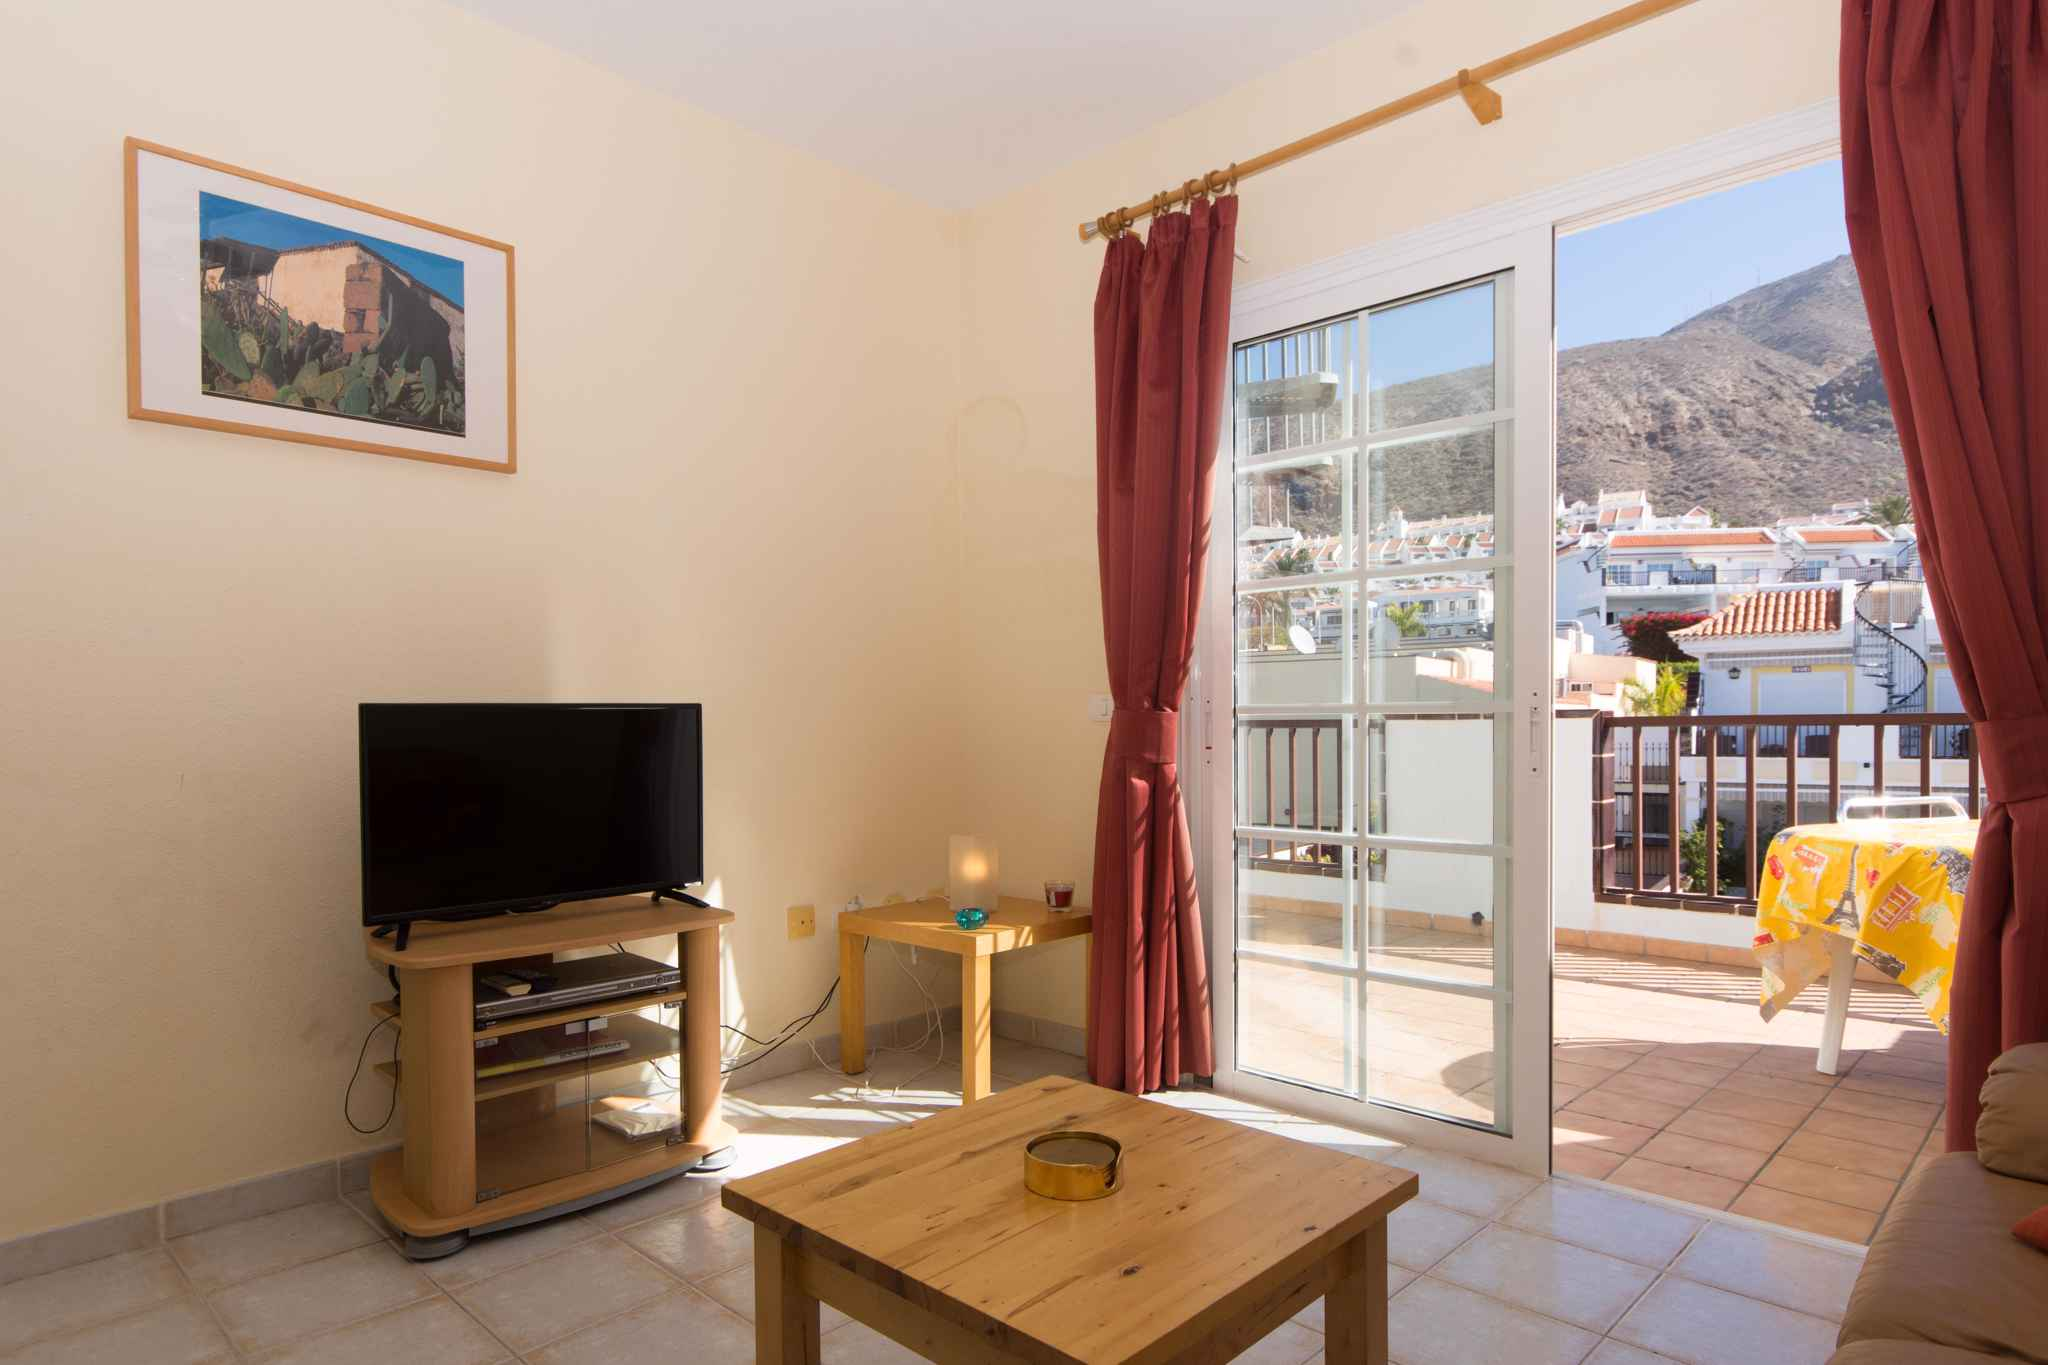 Holiday apartment mit Pool in Ferienanlage (2382979), Los Cristianos, Tenerife, Canary Islands, Spain, picture 18